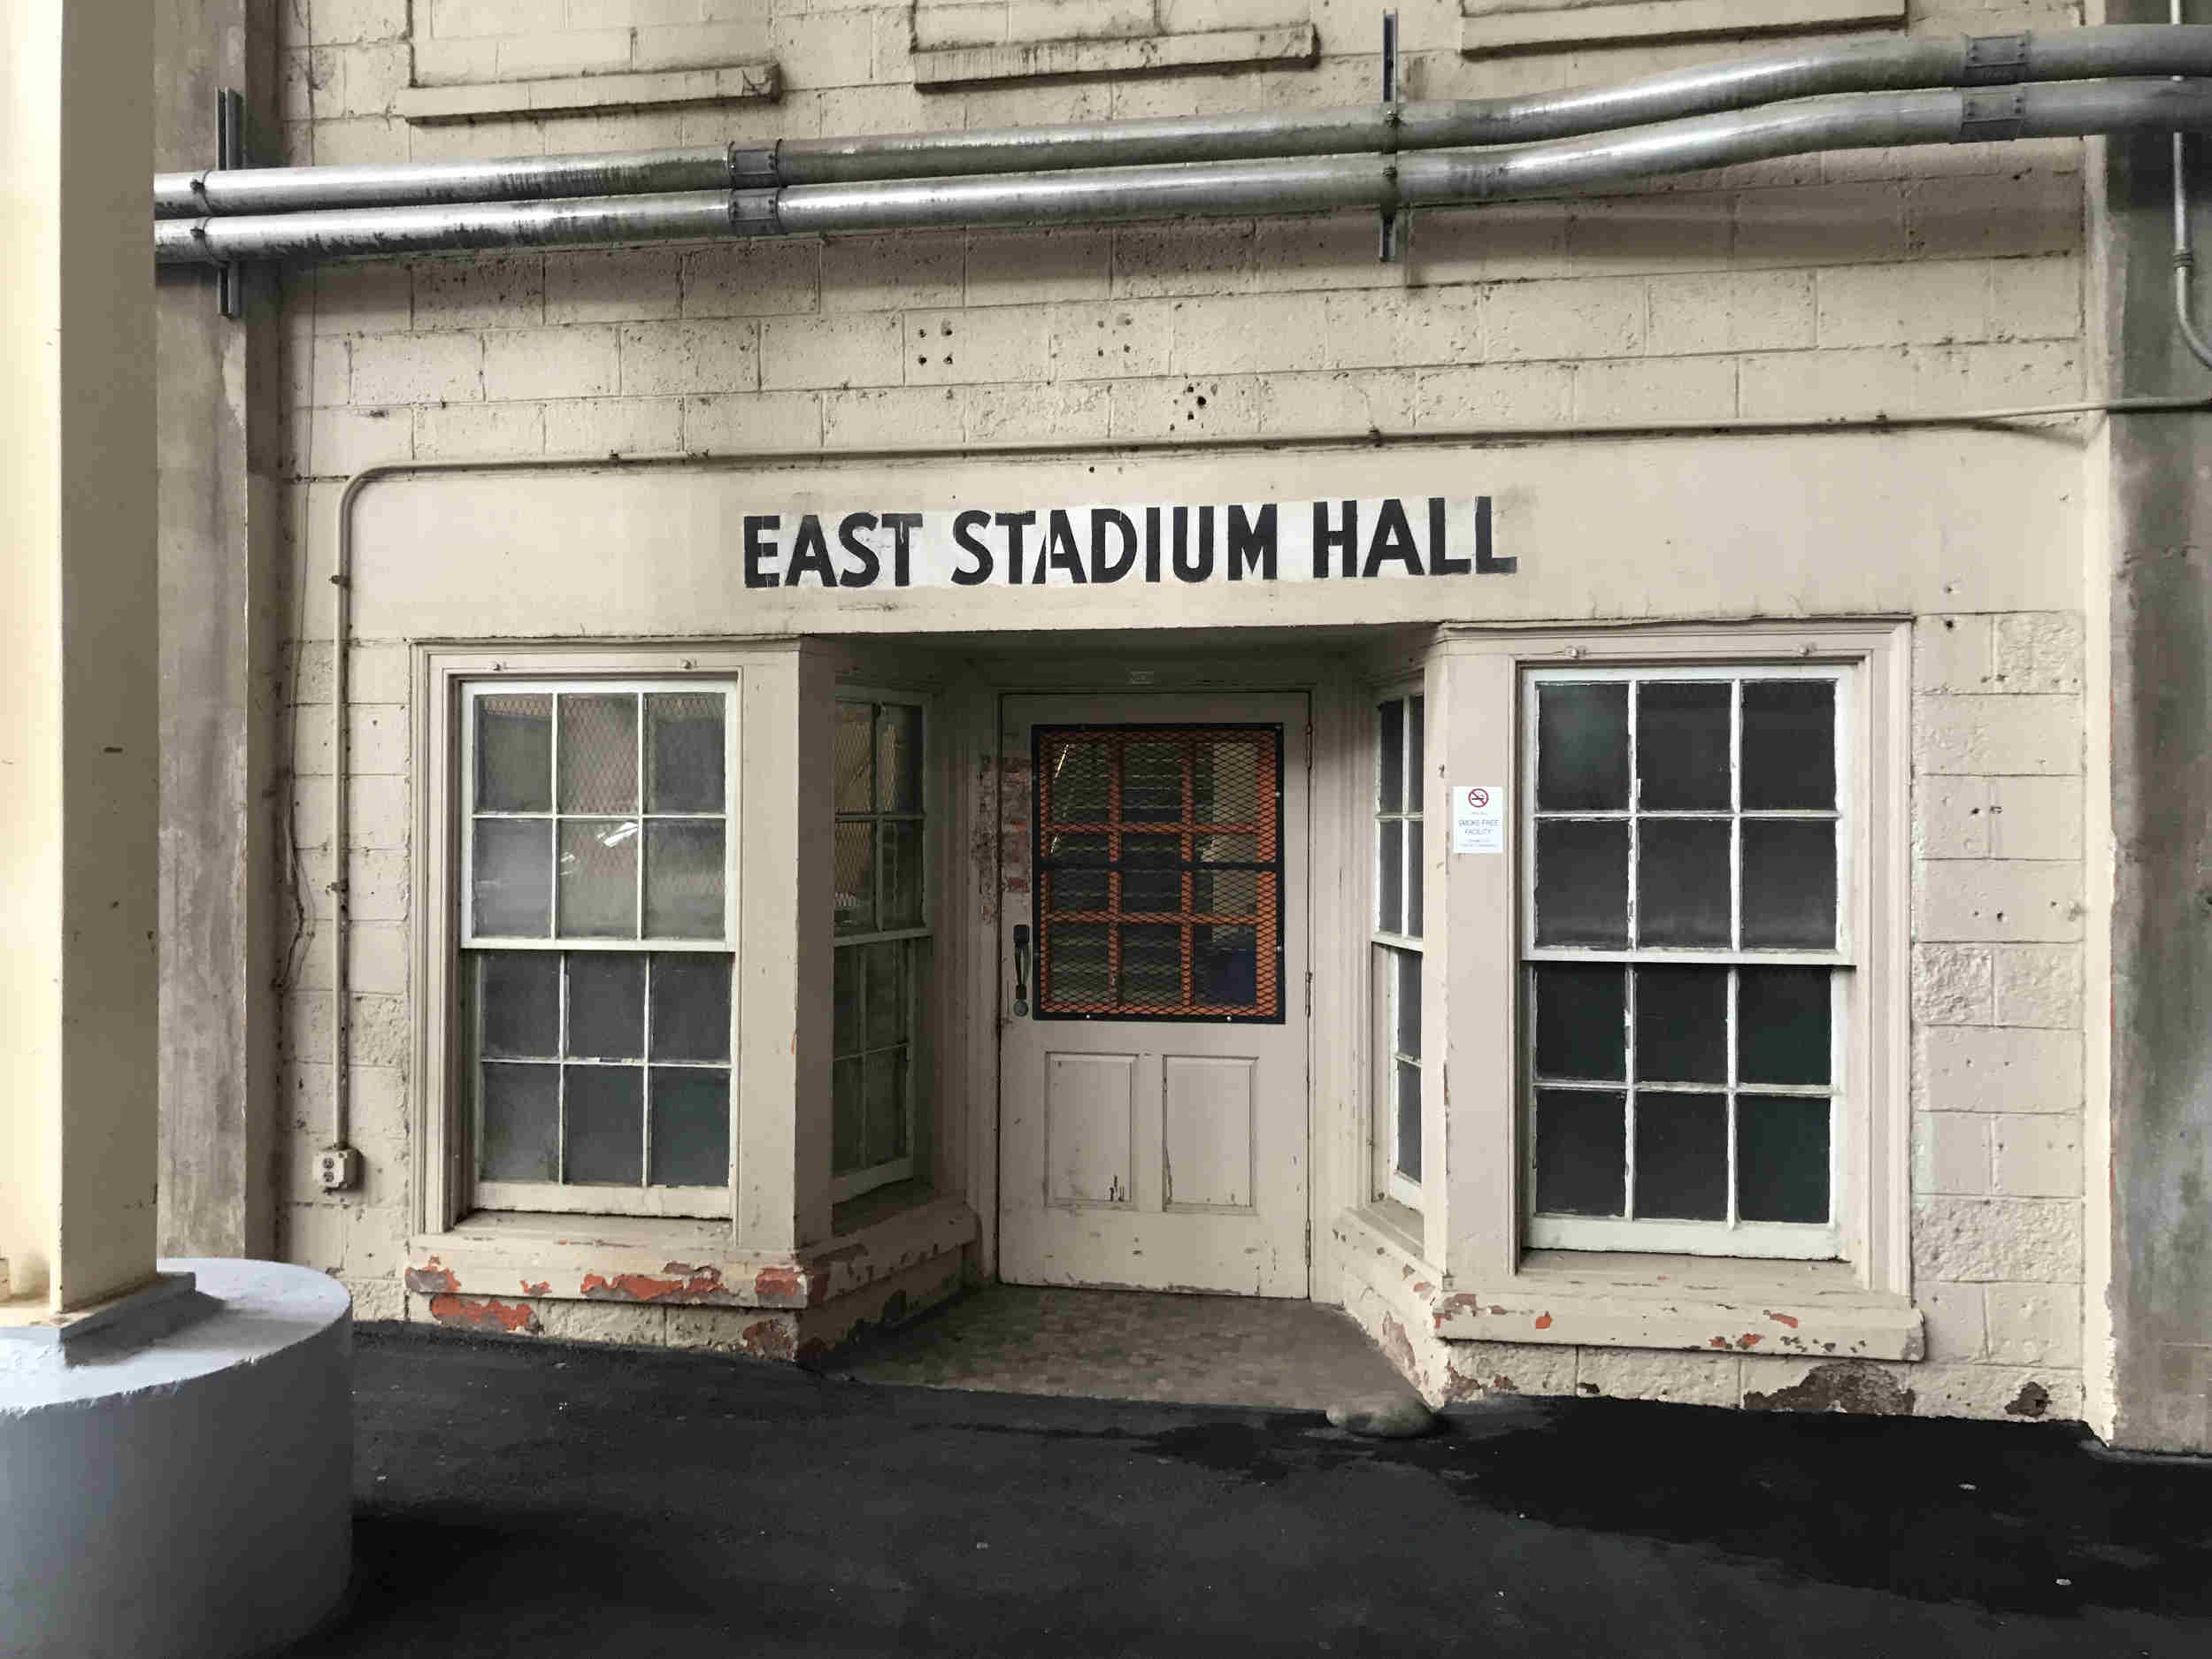 East Stadium Hall